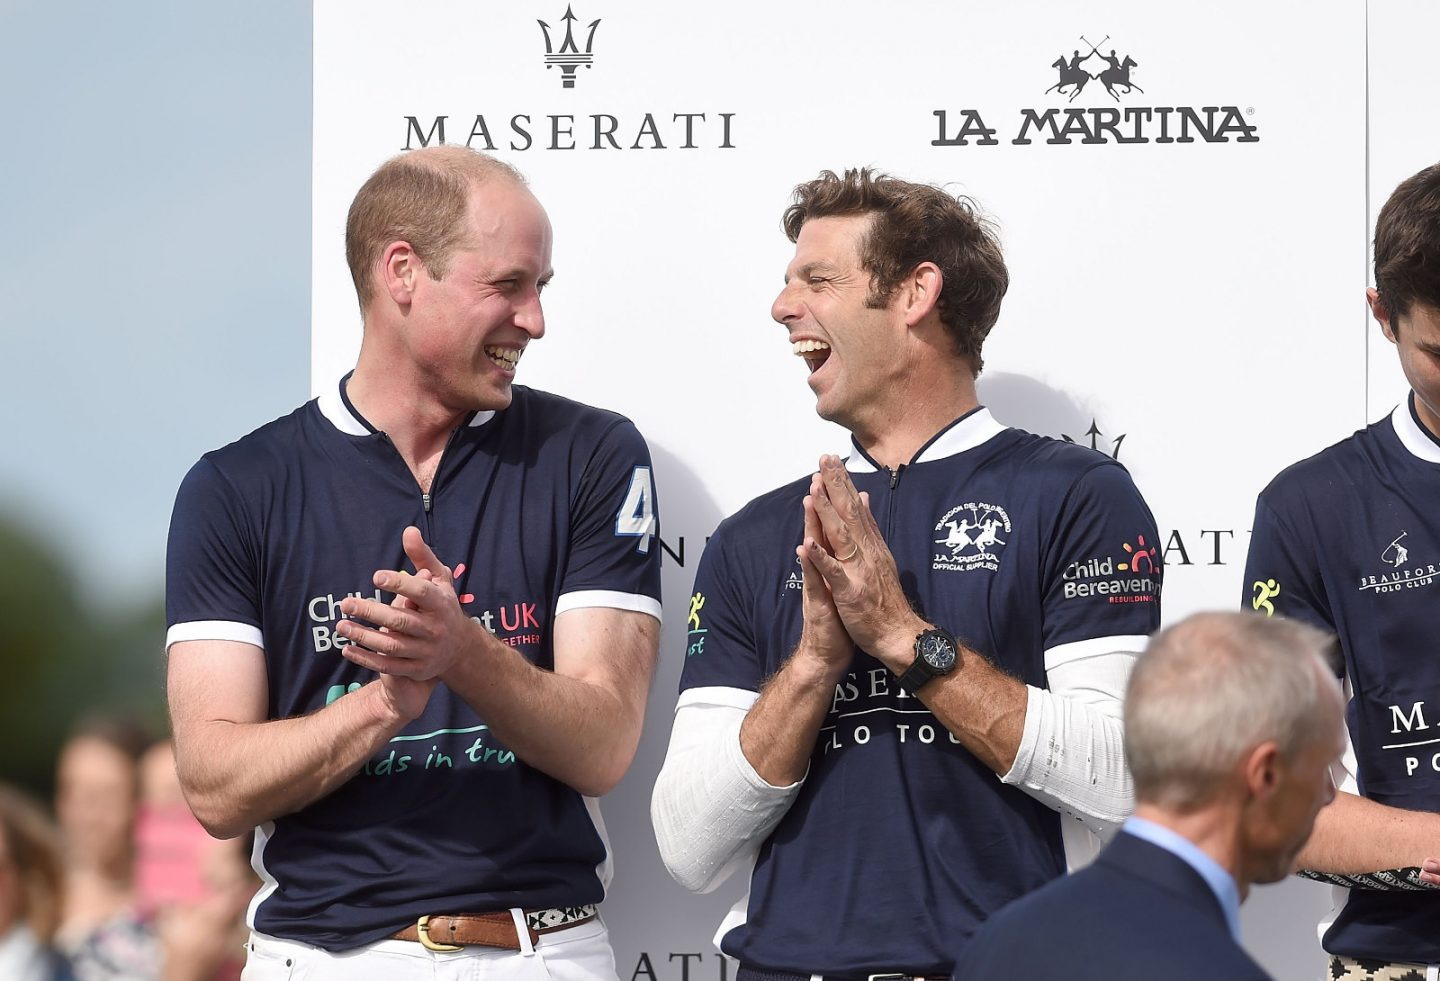 Prince William plays polo for charity at Maserati tour leg; La Martina designs commemorative shirts